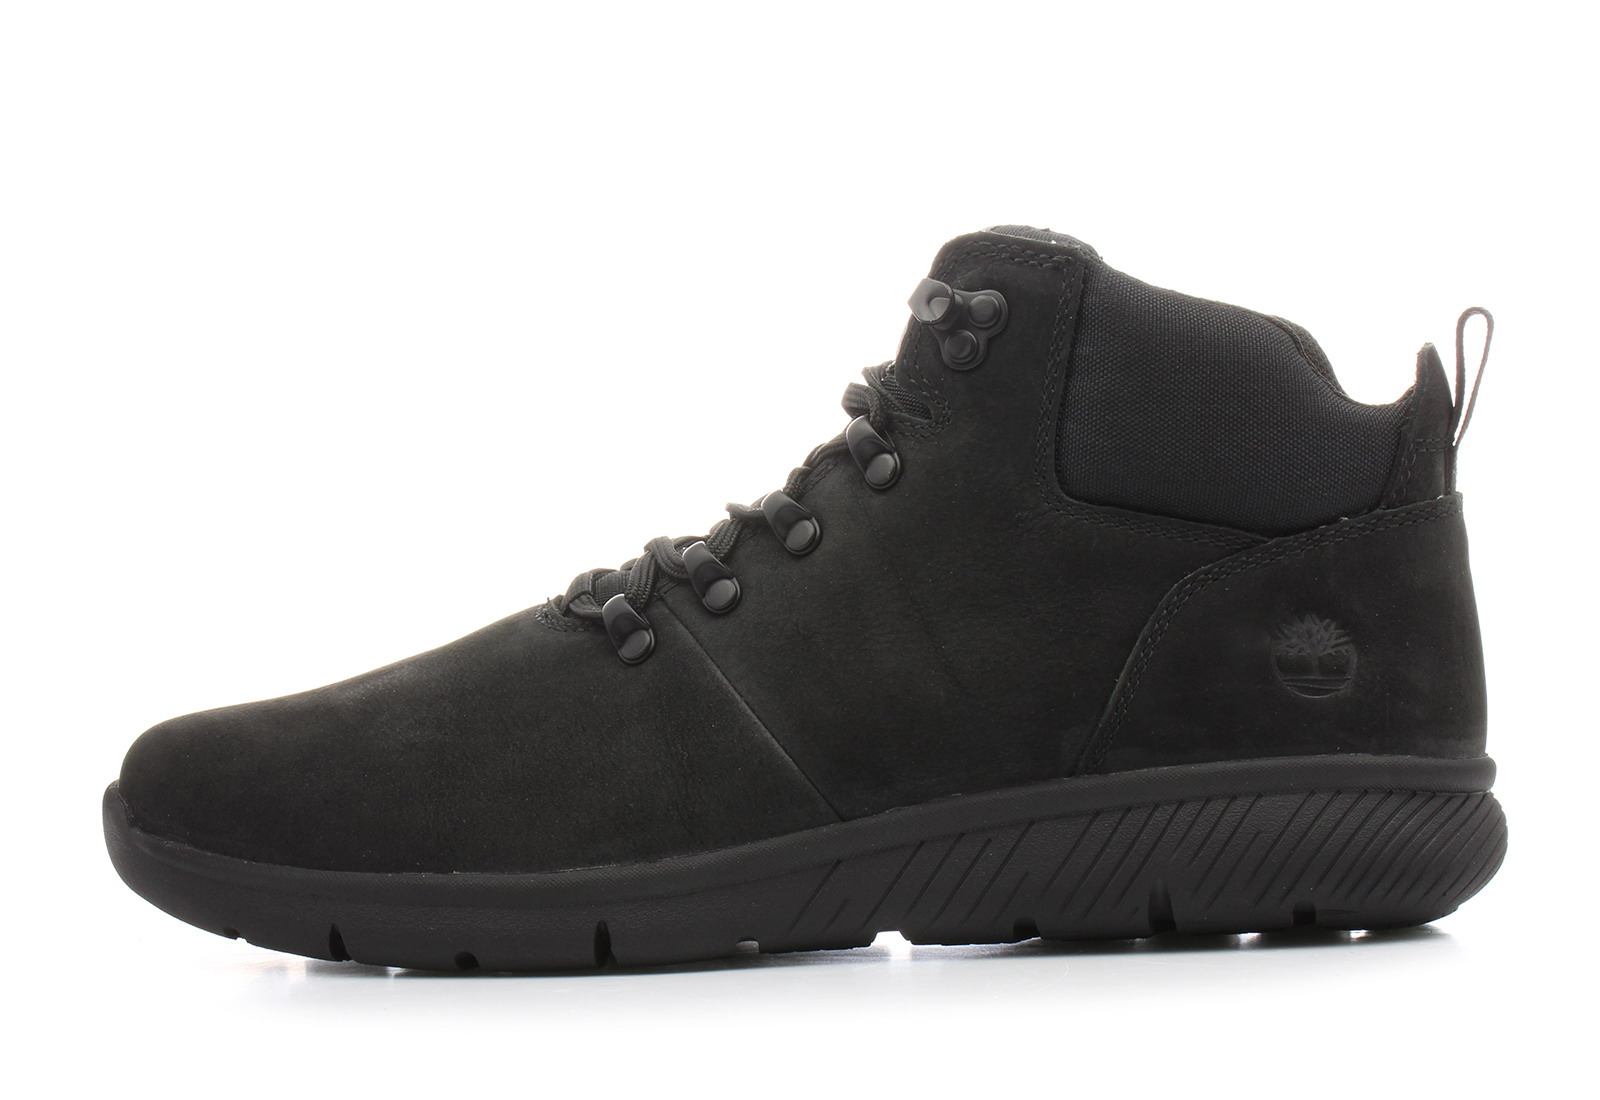 6957a3bc Timberland Buty Zimowe - Boltero Leather Hiker Wr - A1R1S-blk ...